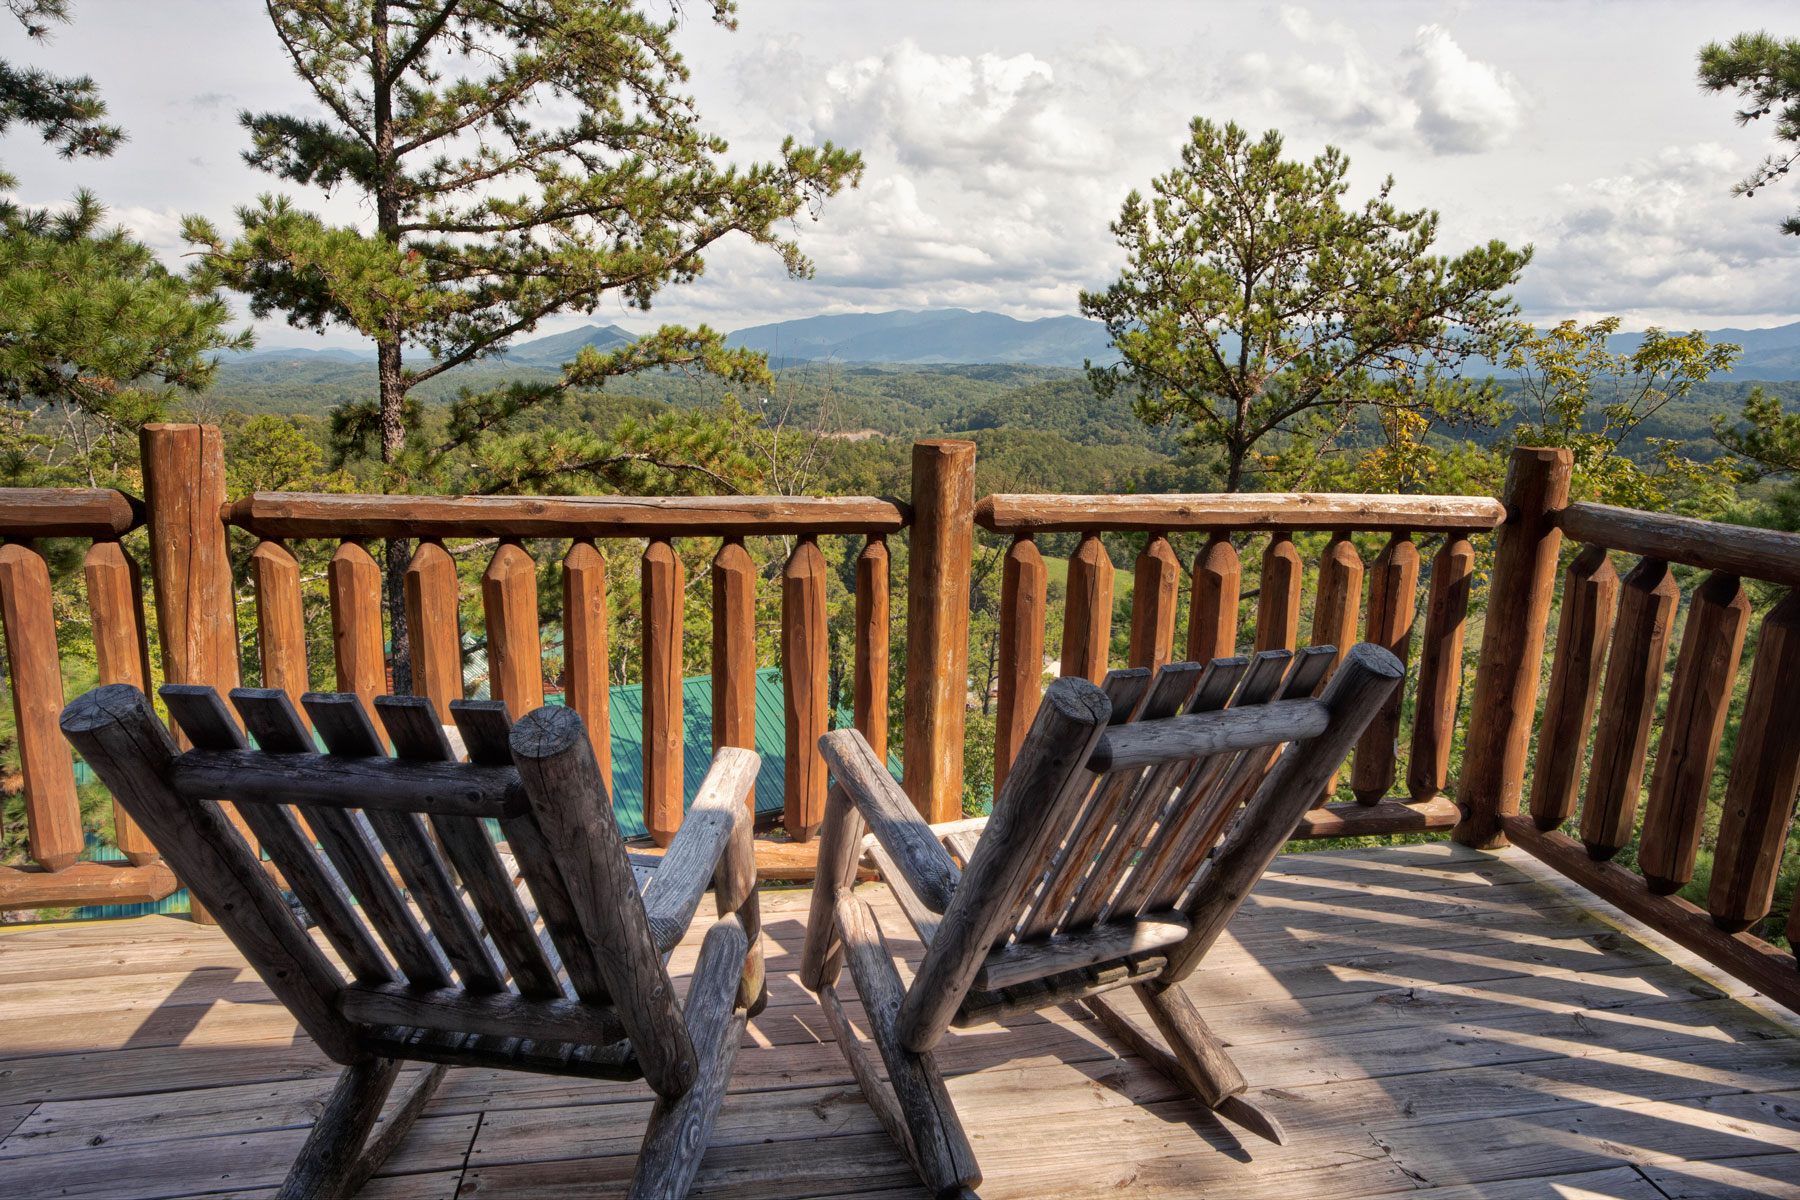 wooden chairs overlooking mountains